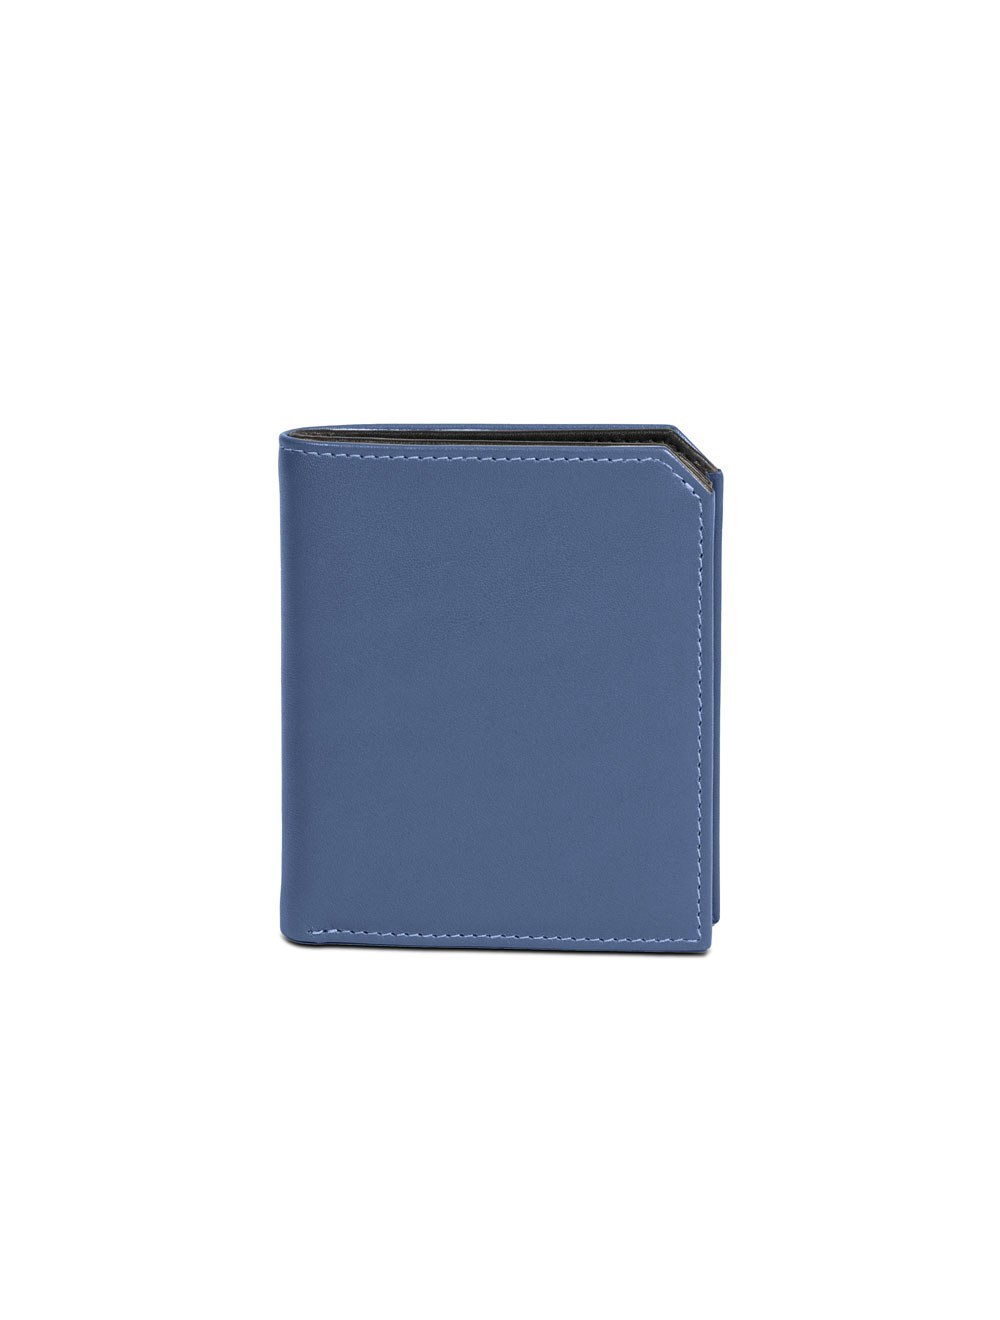 Wallet And Card Holder - Dark Denim